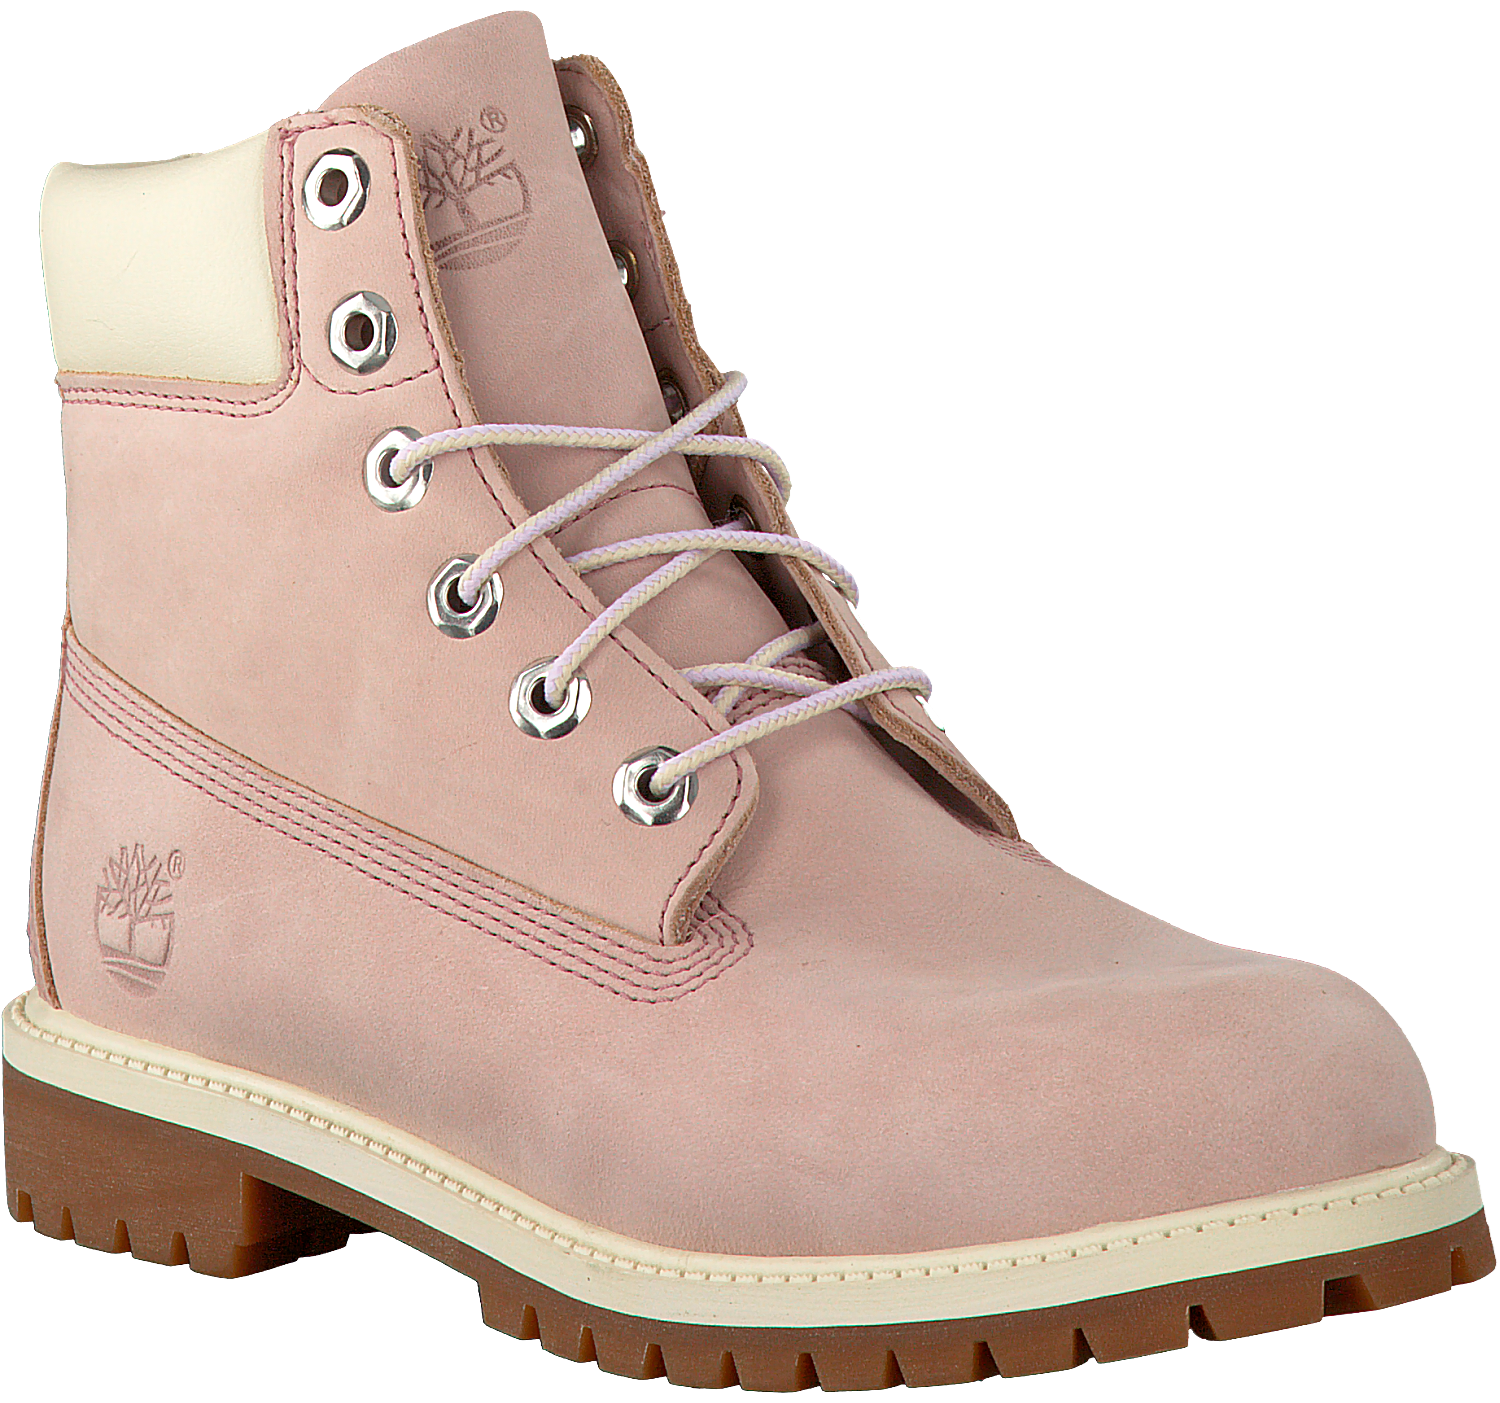 Kids Boot nl Omoda Prm Enkelboots 6in Wp Roze Timberland SYqwWH